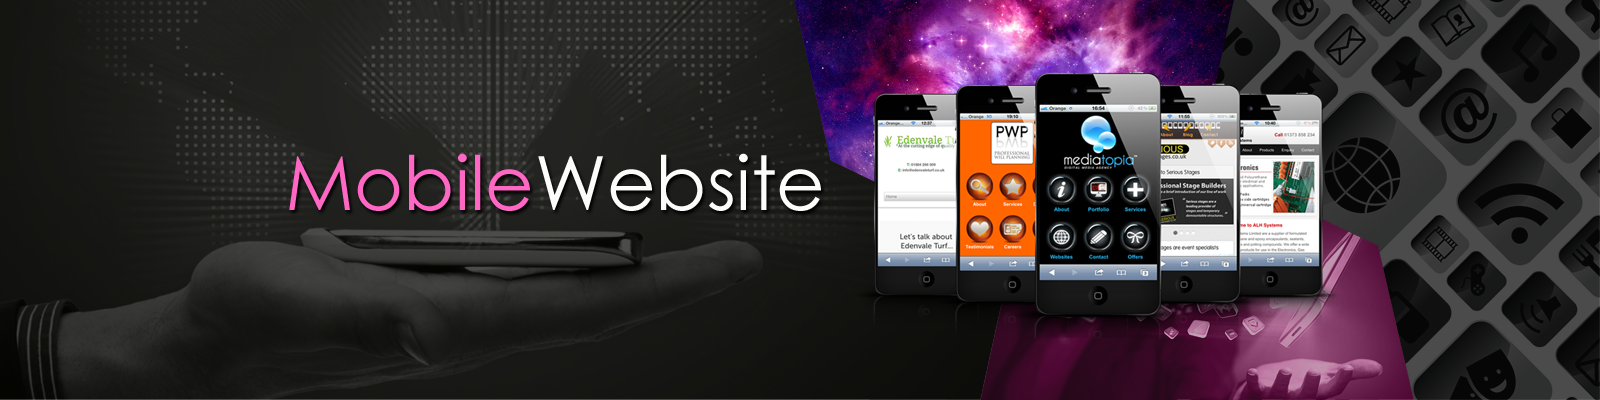 013-mobile-website-baner